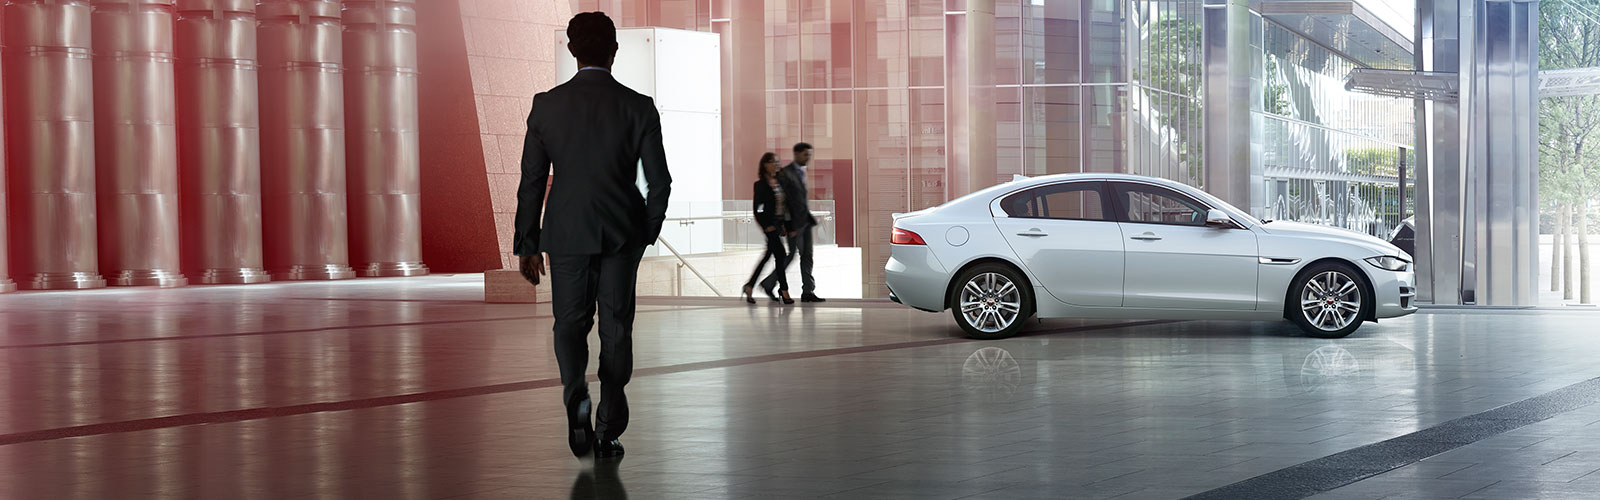 White Jaguar indoors with man